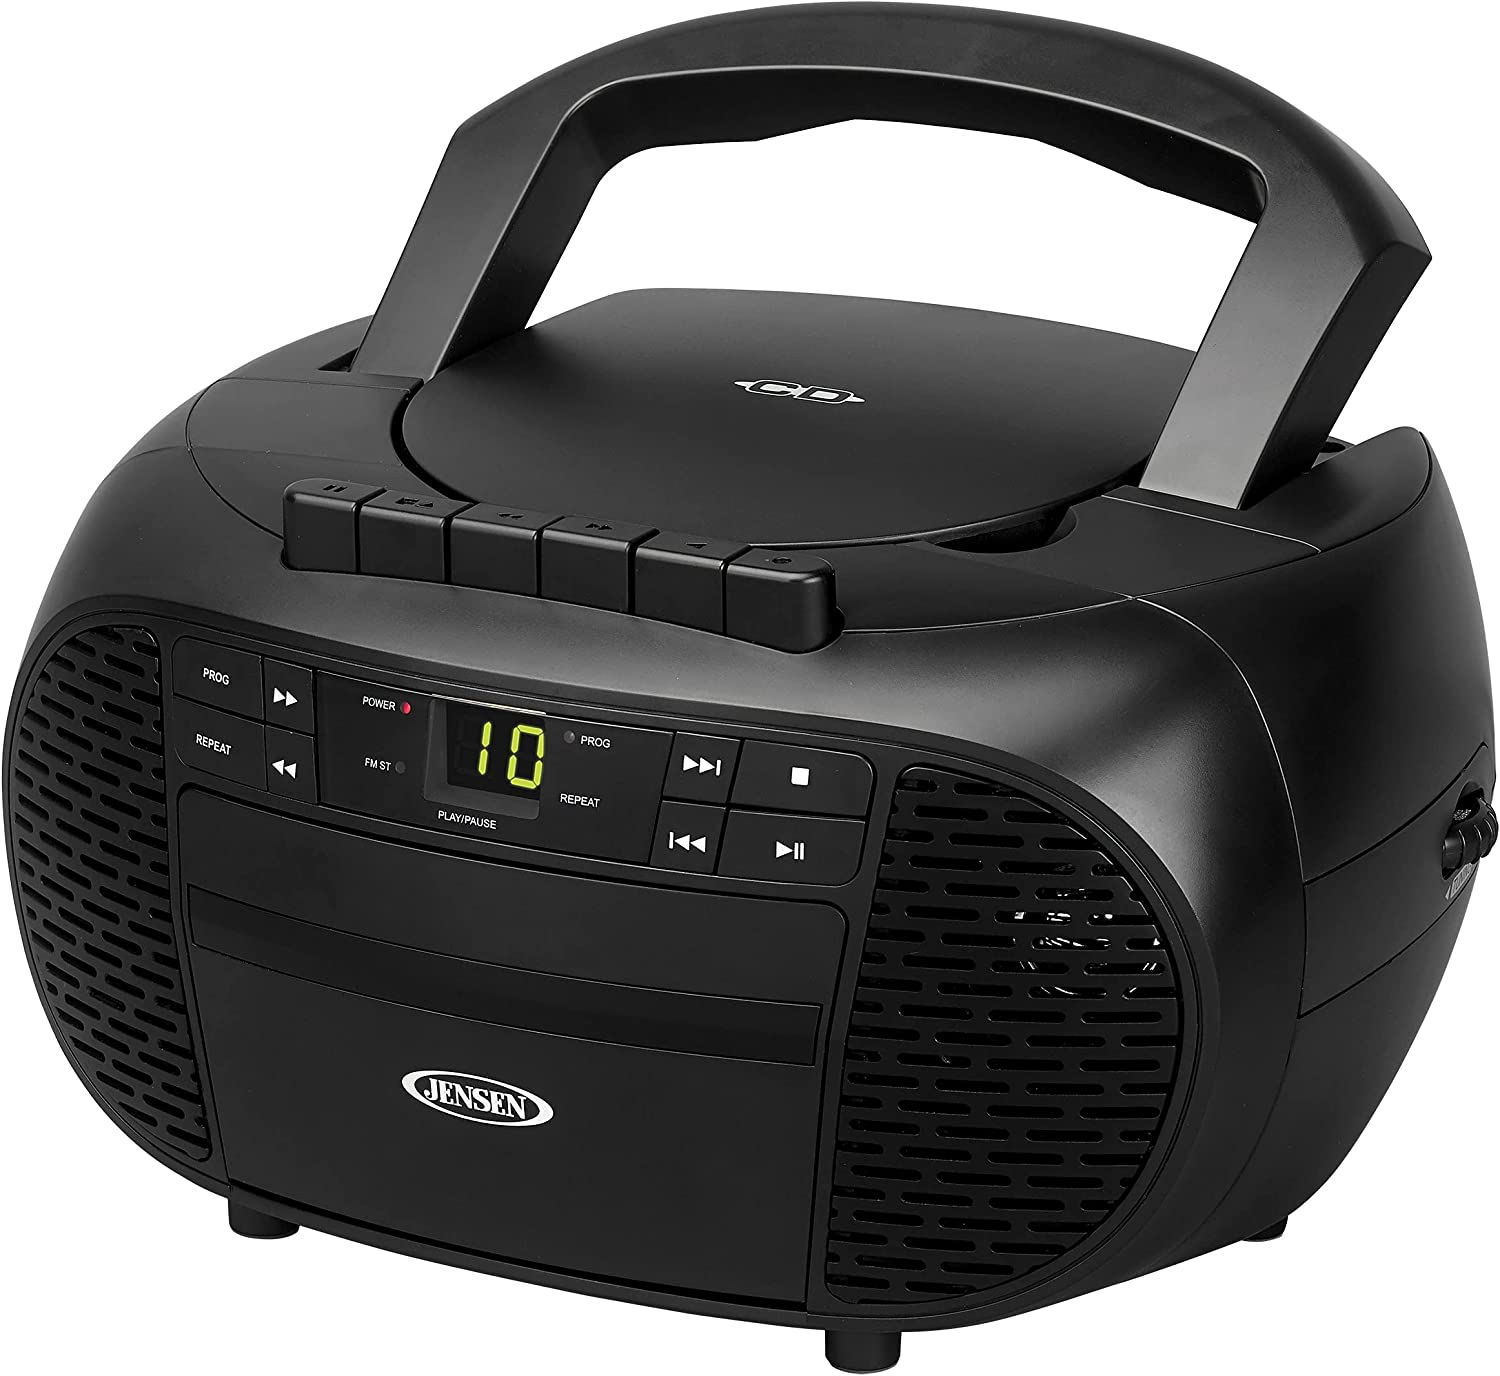 Jensen CD-550 Portable Stereo Compact wit Manufacturer regenerated product trust Recorder Disc Cassette